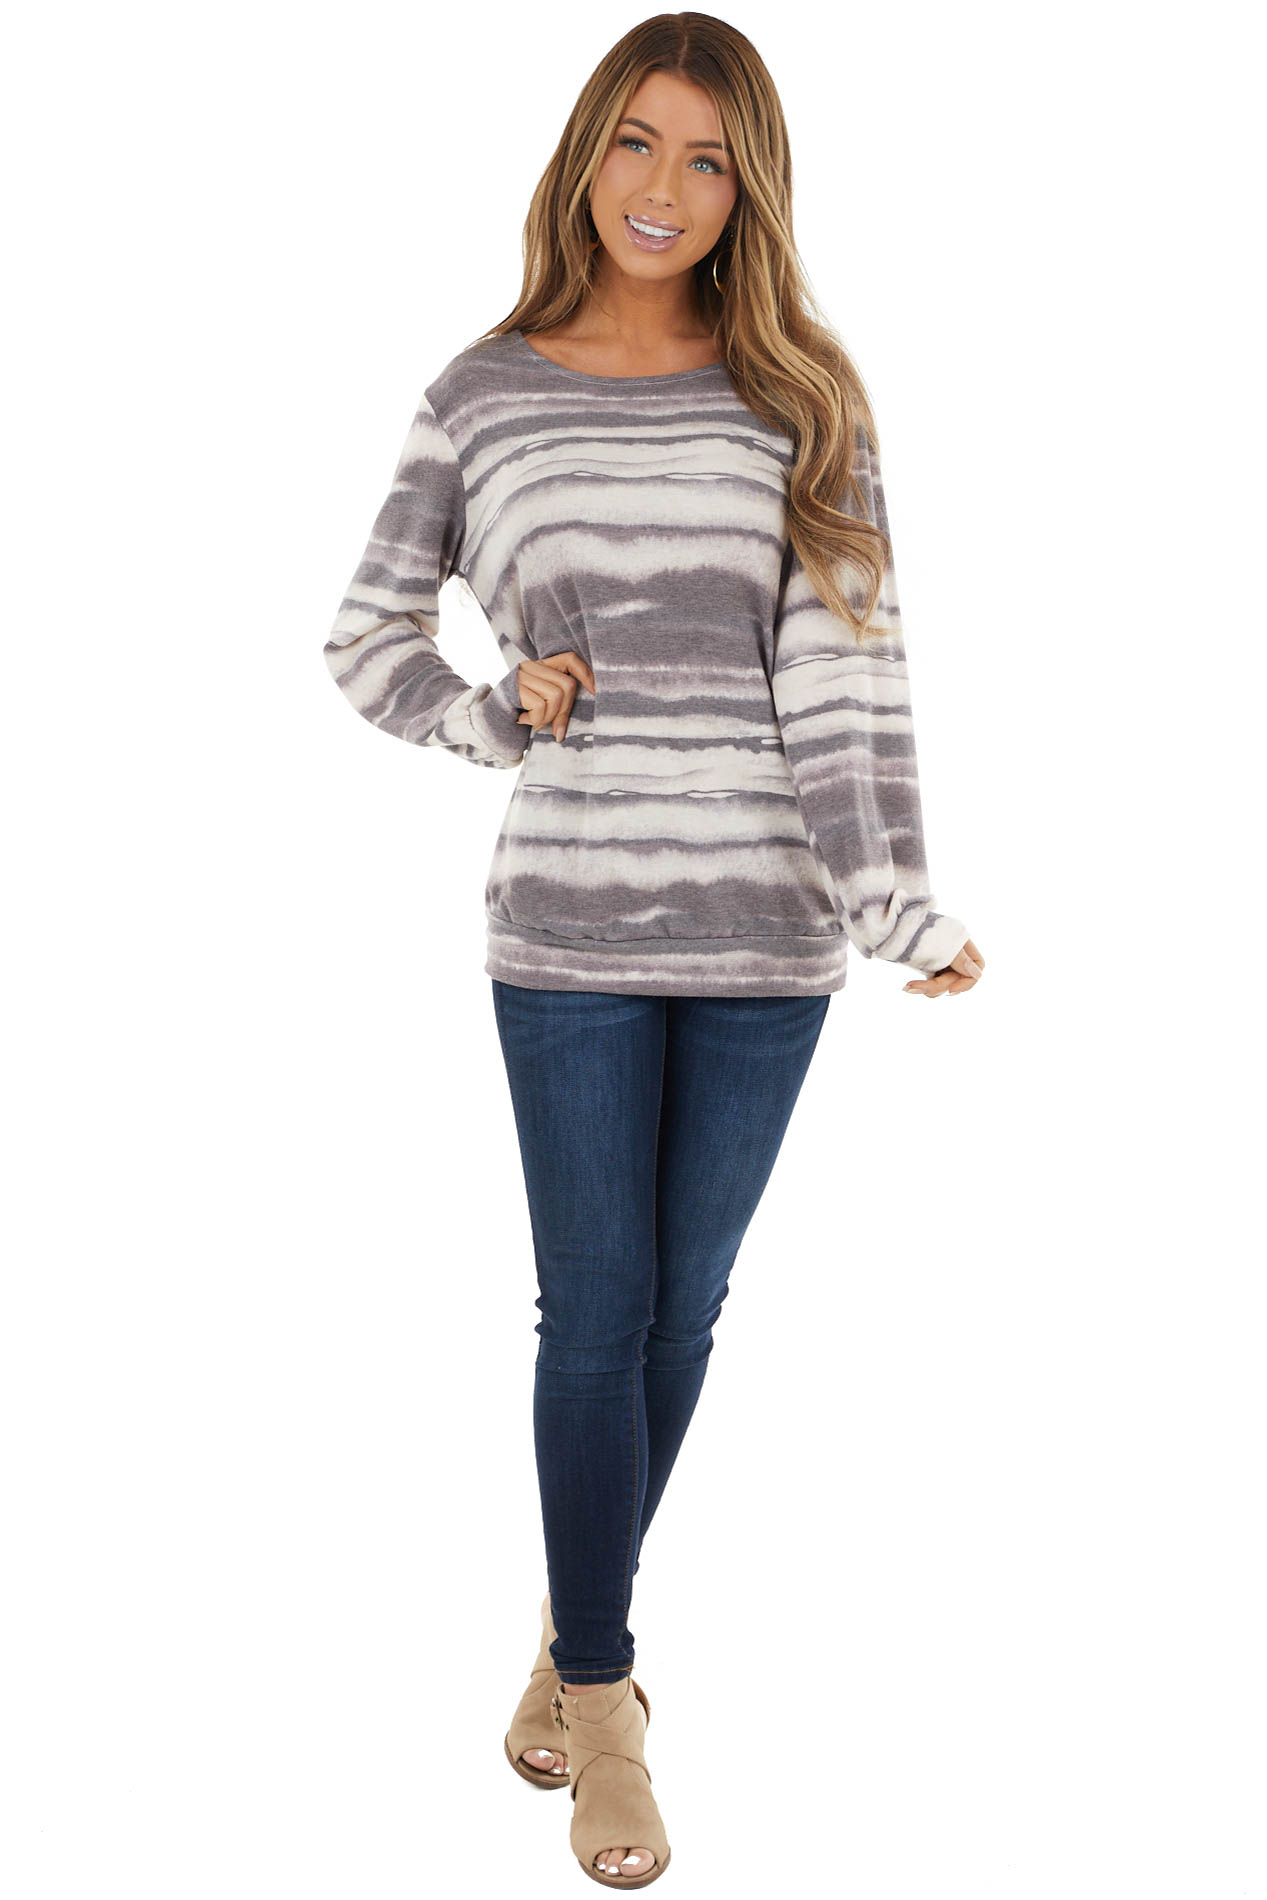 Dusty Eggplant Ink Striped Long Sleeve Top with Crochet Lace